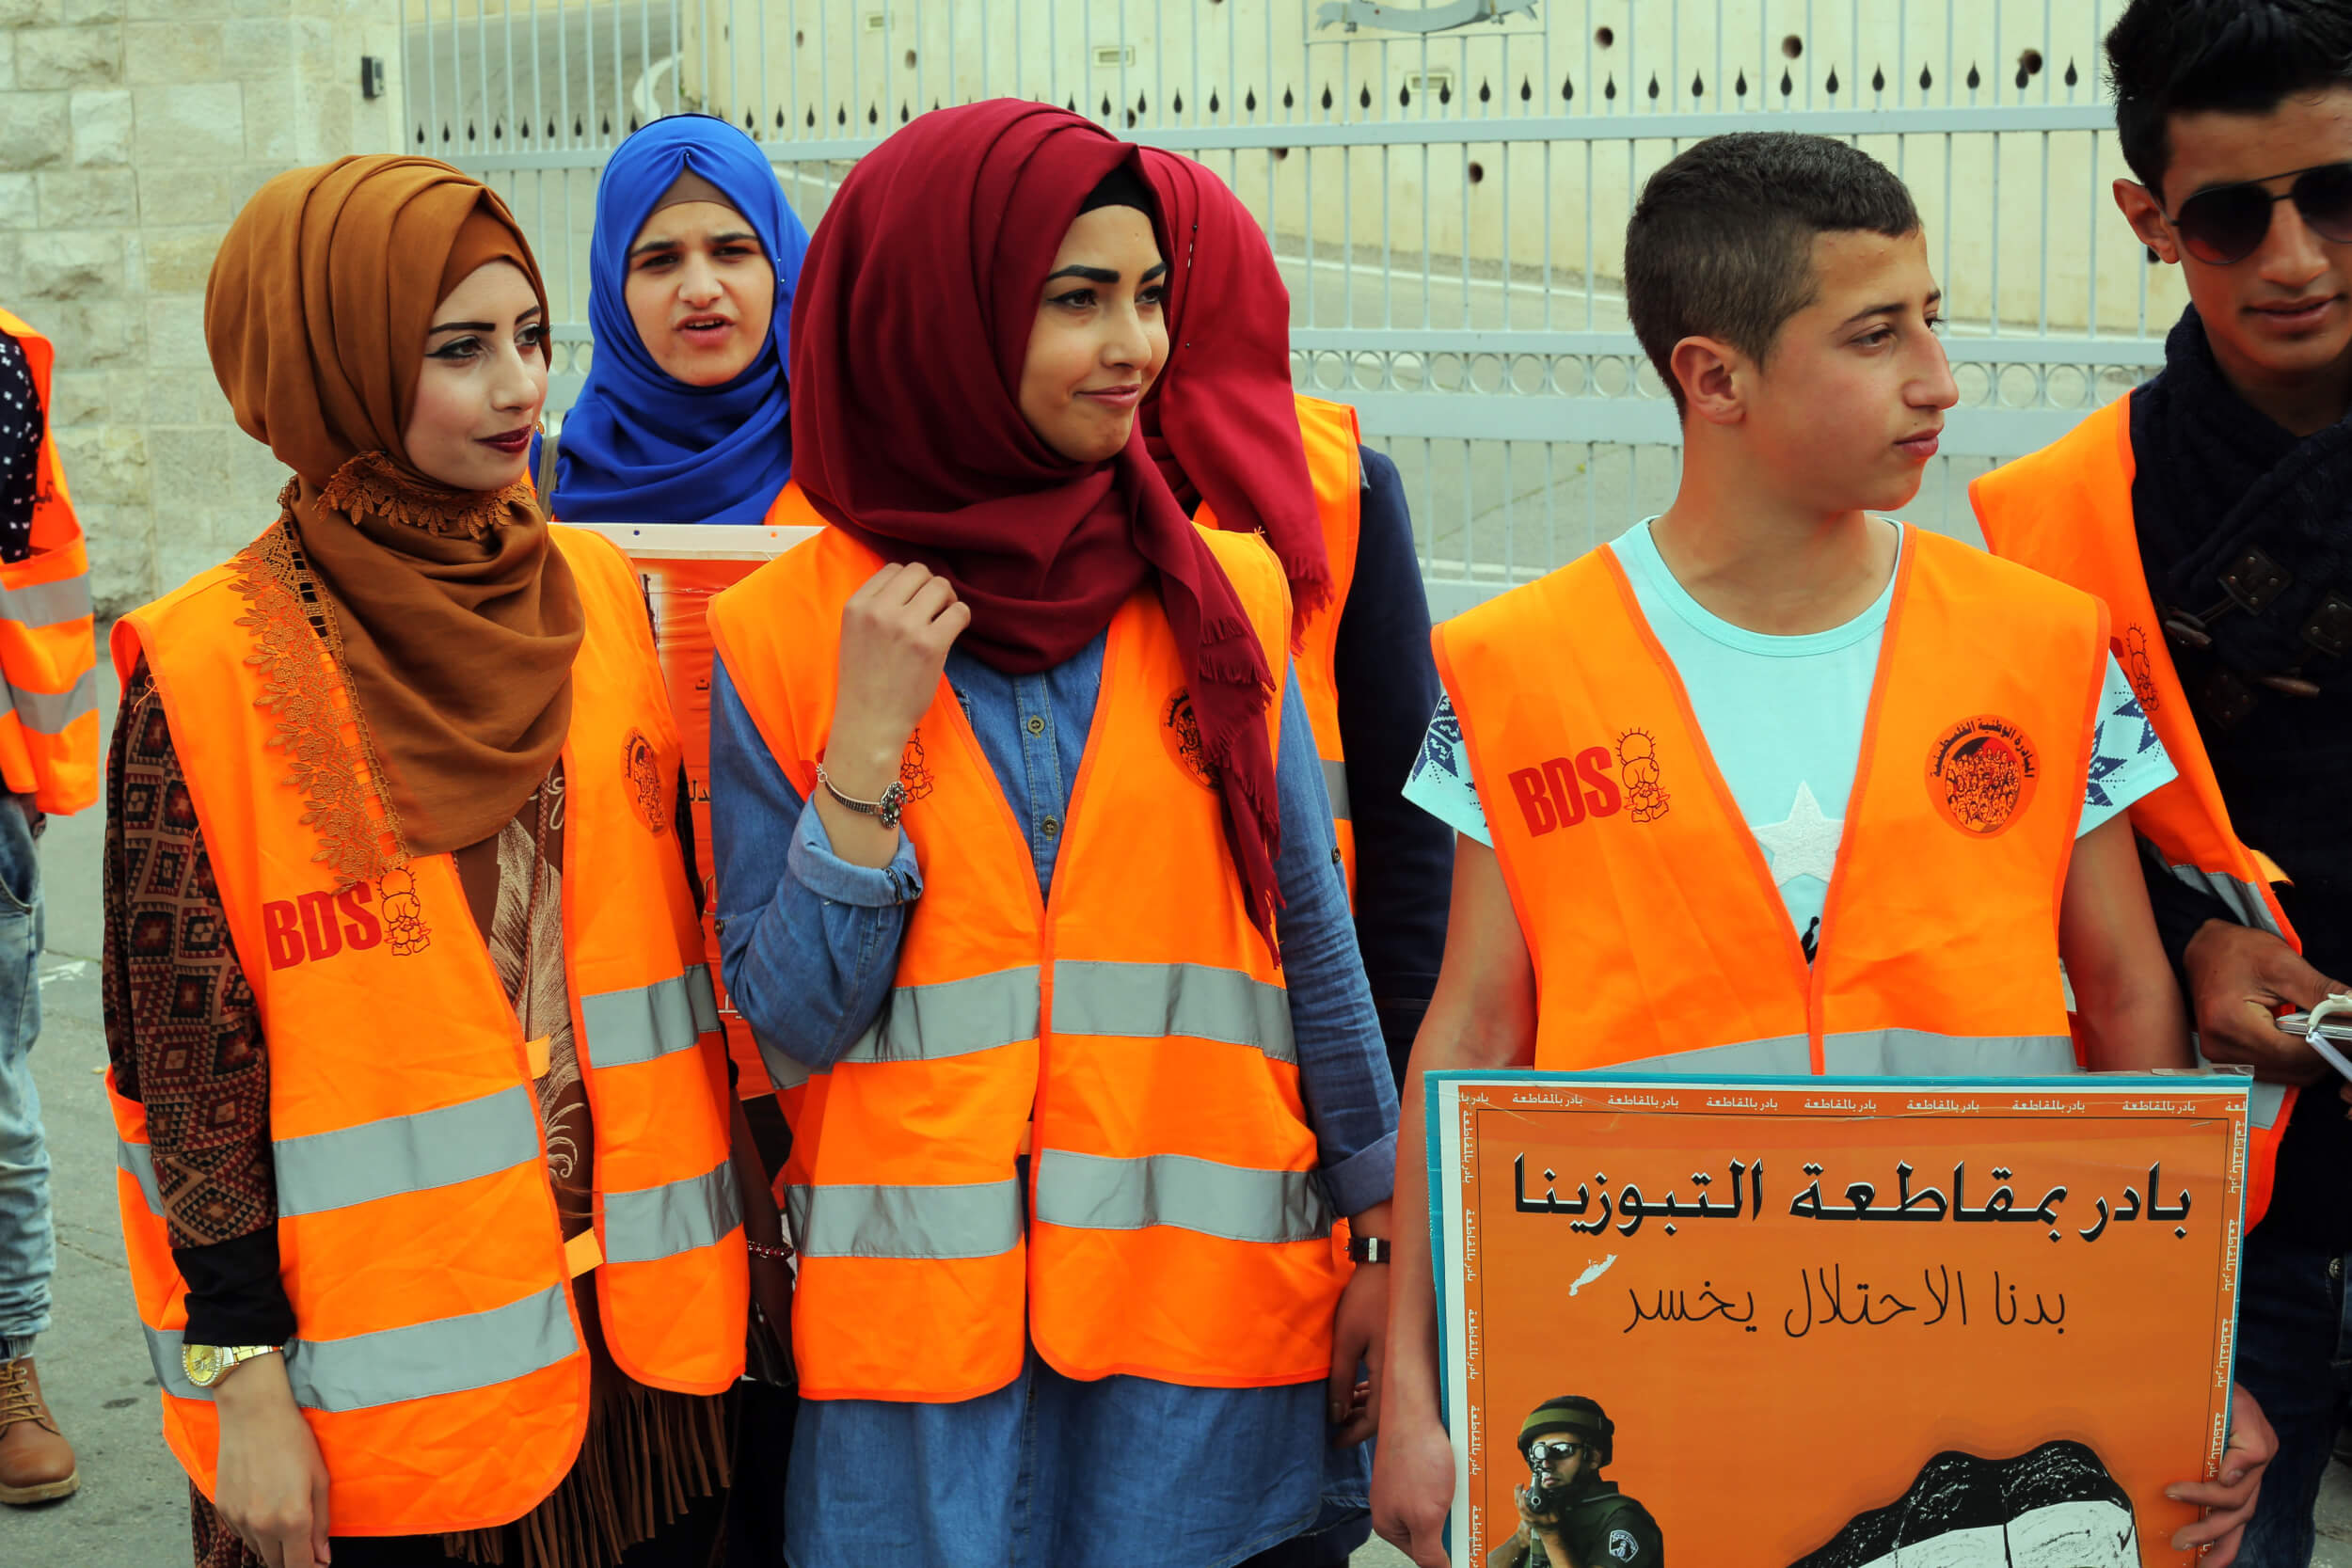 Most of the marchers were local students with the PNI movement (Photo: Abed al Qaisi)